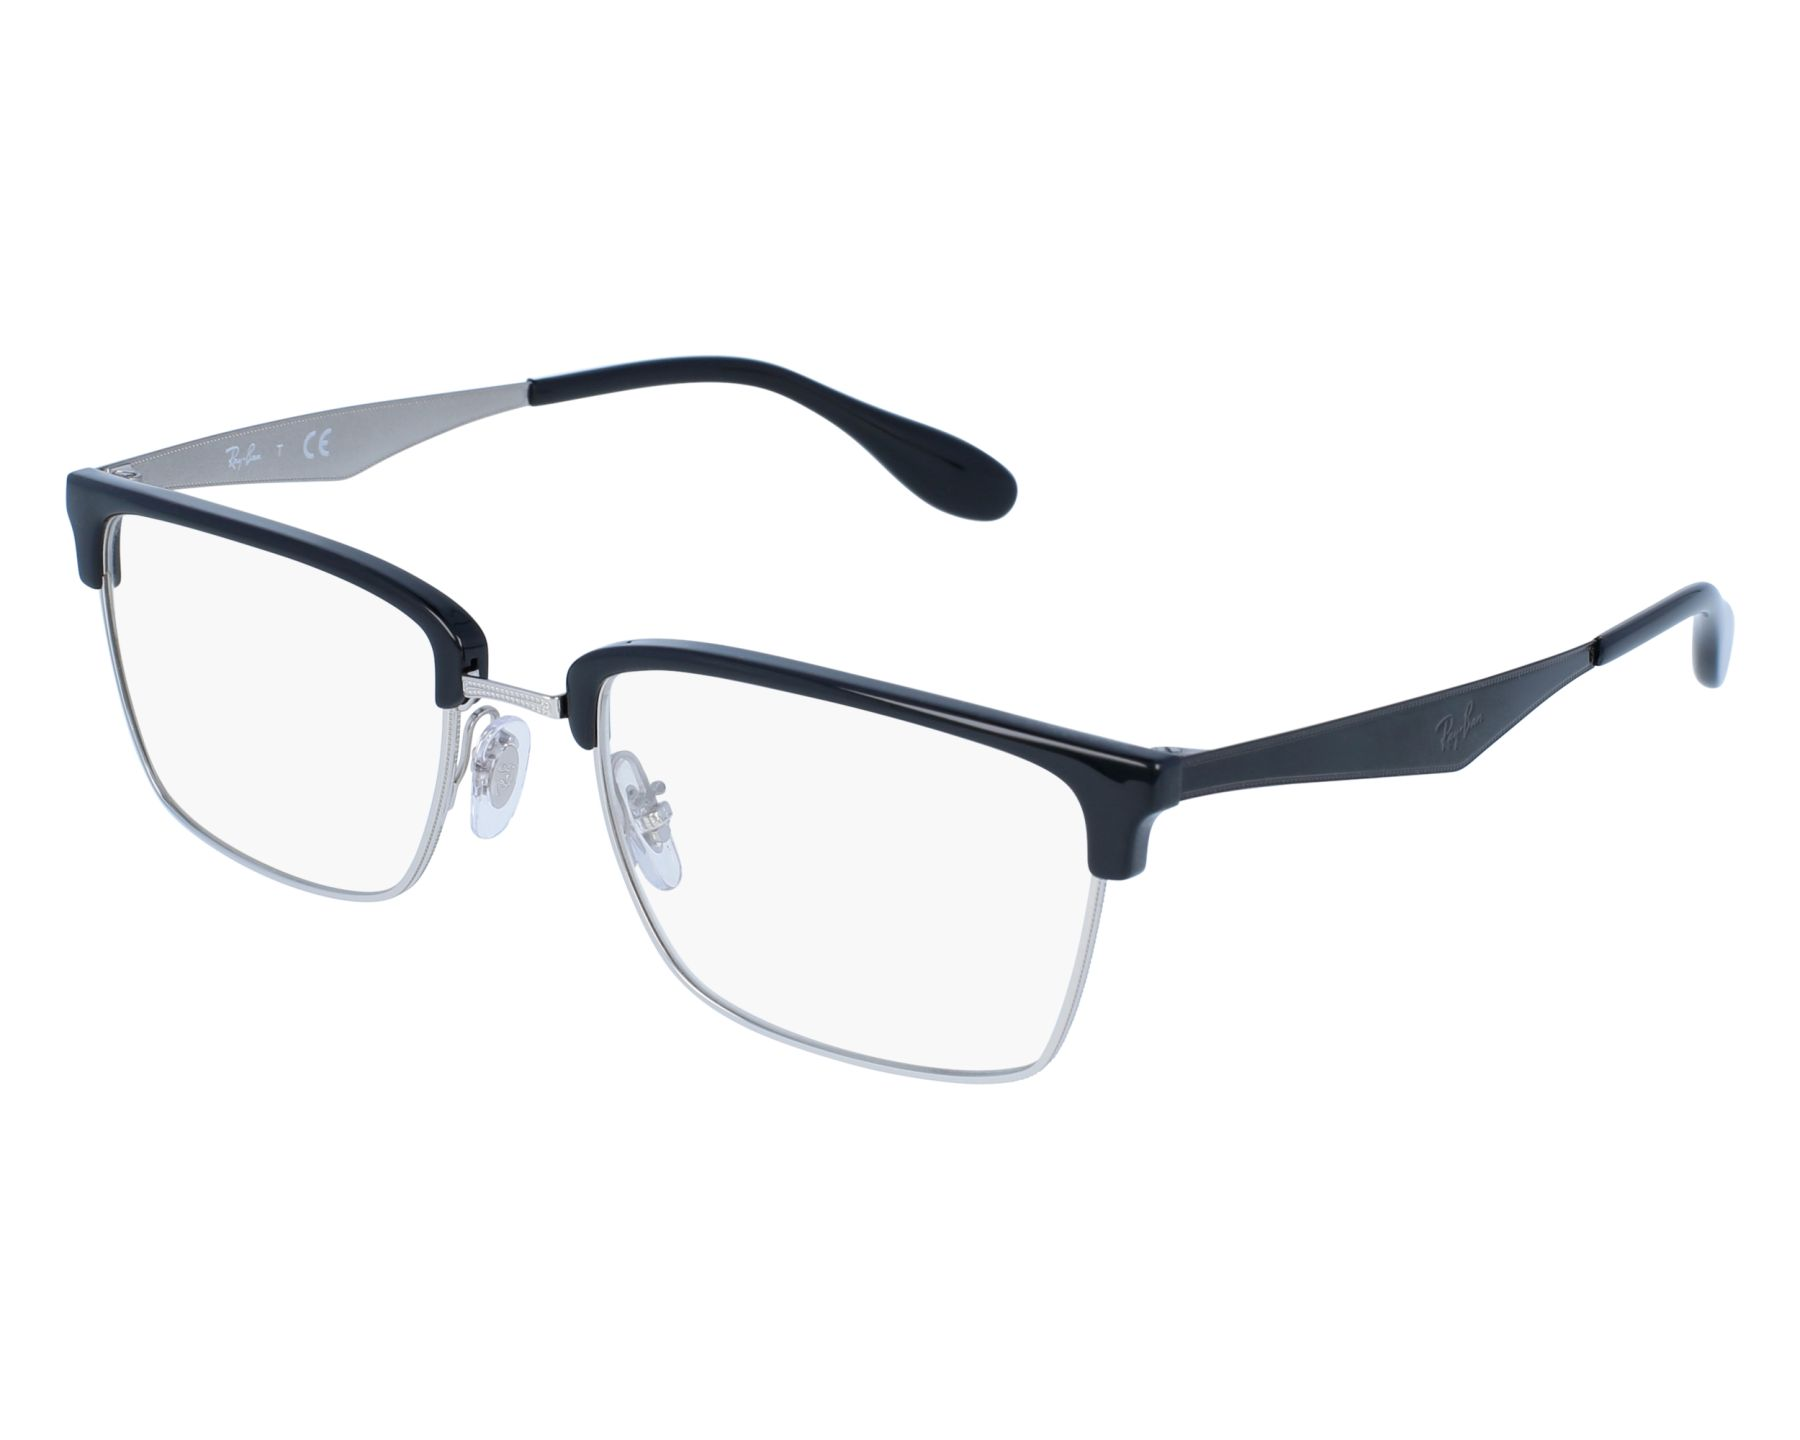 40f102305b7 eyeglasses Ray-Ban RX-6397 2932 52-19 Silver Black front view